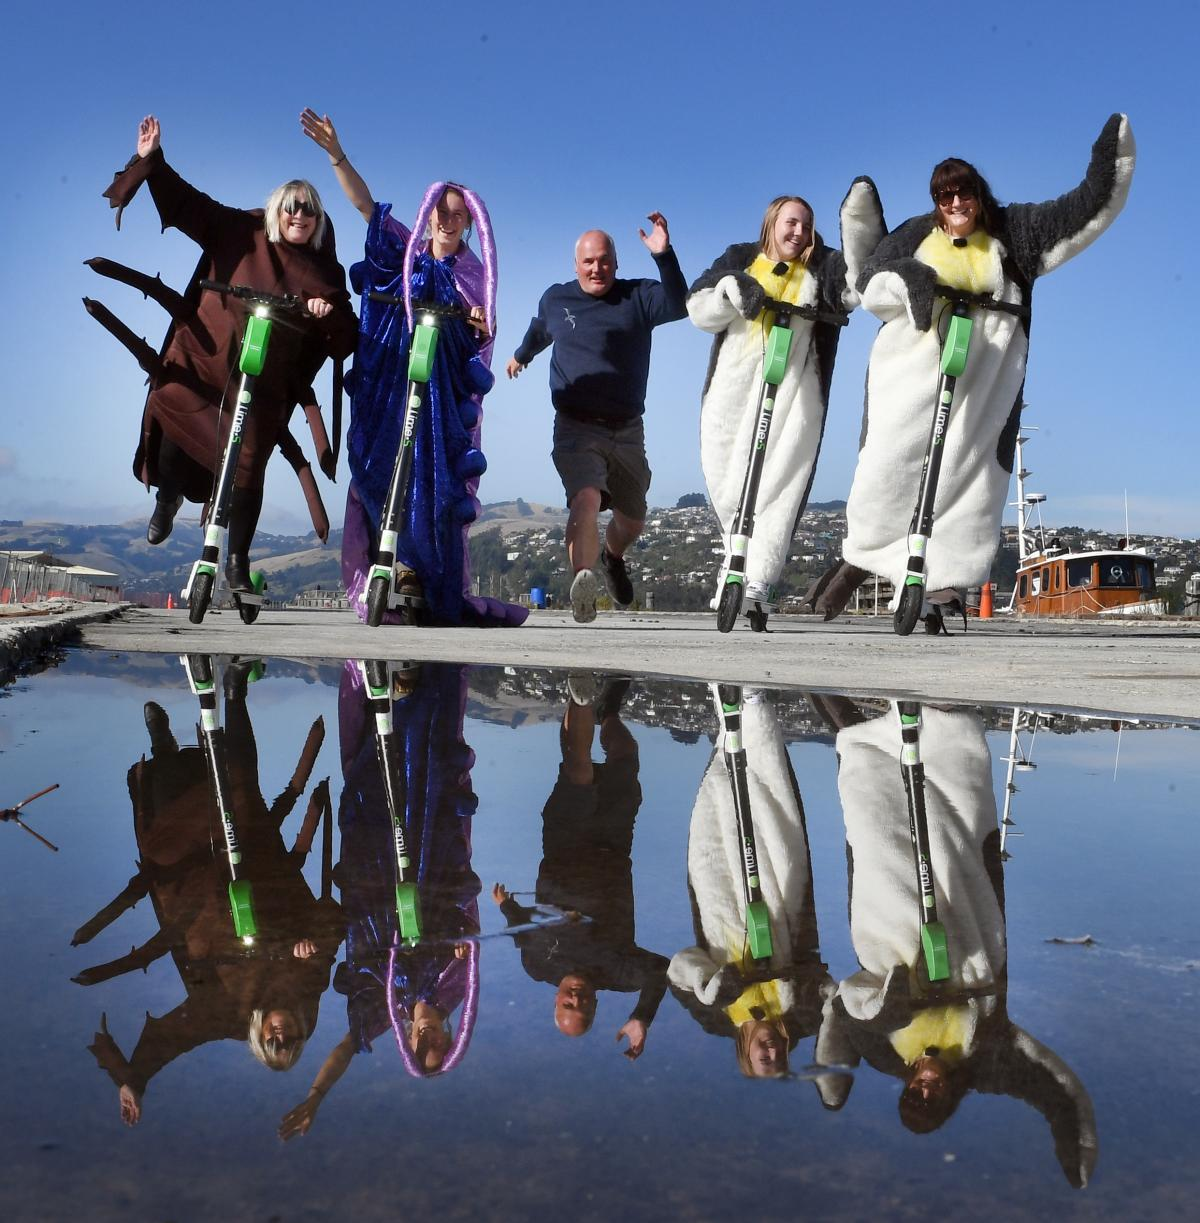 Festival aims to have residents exploring